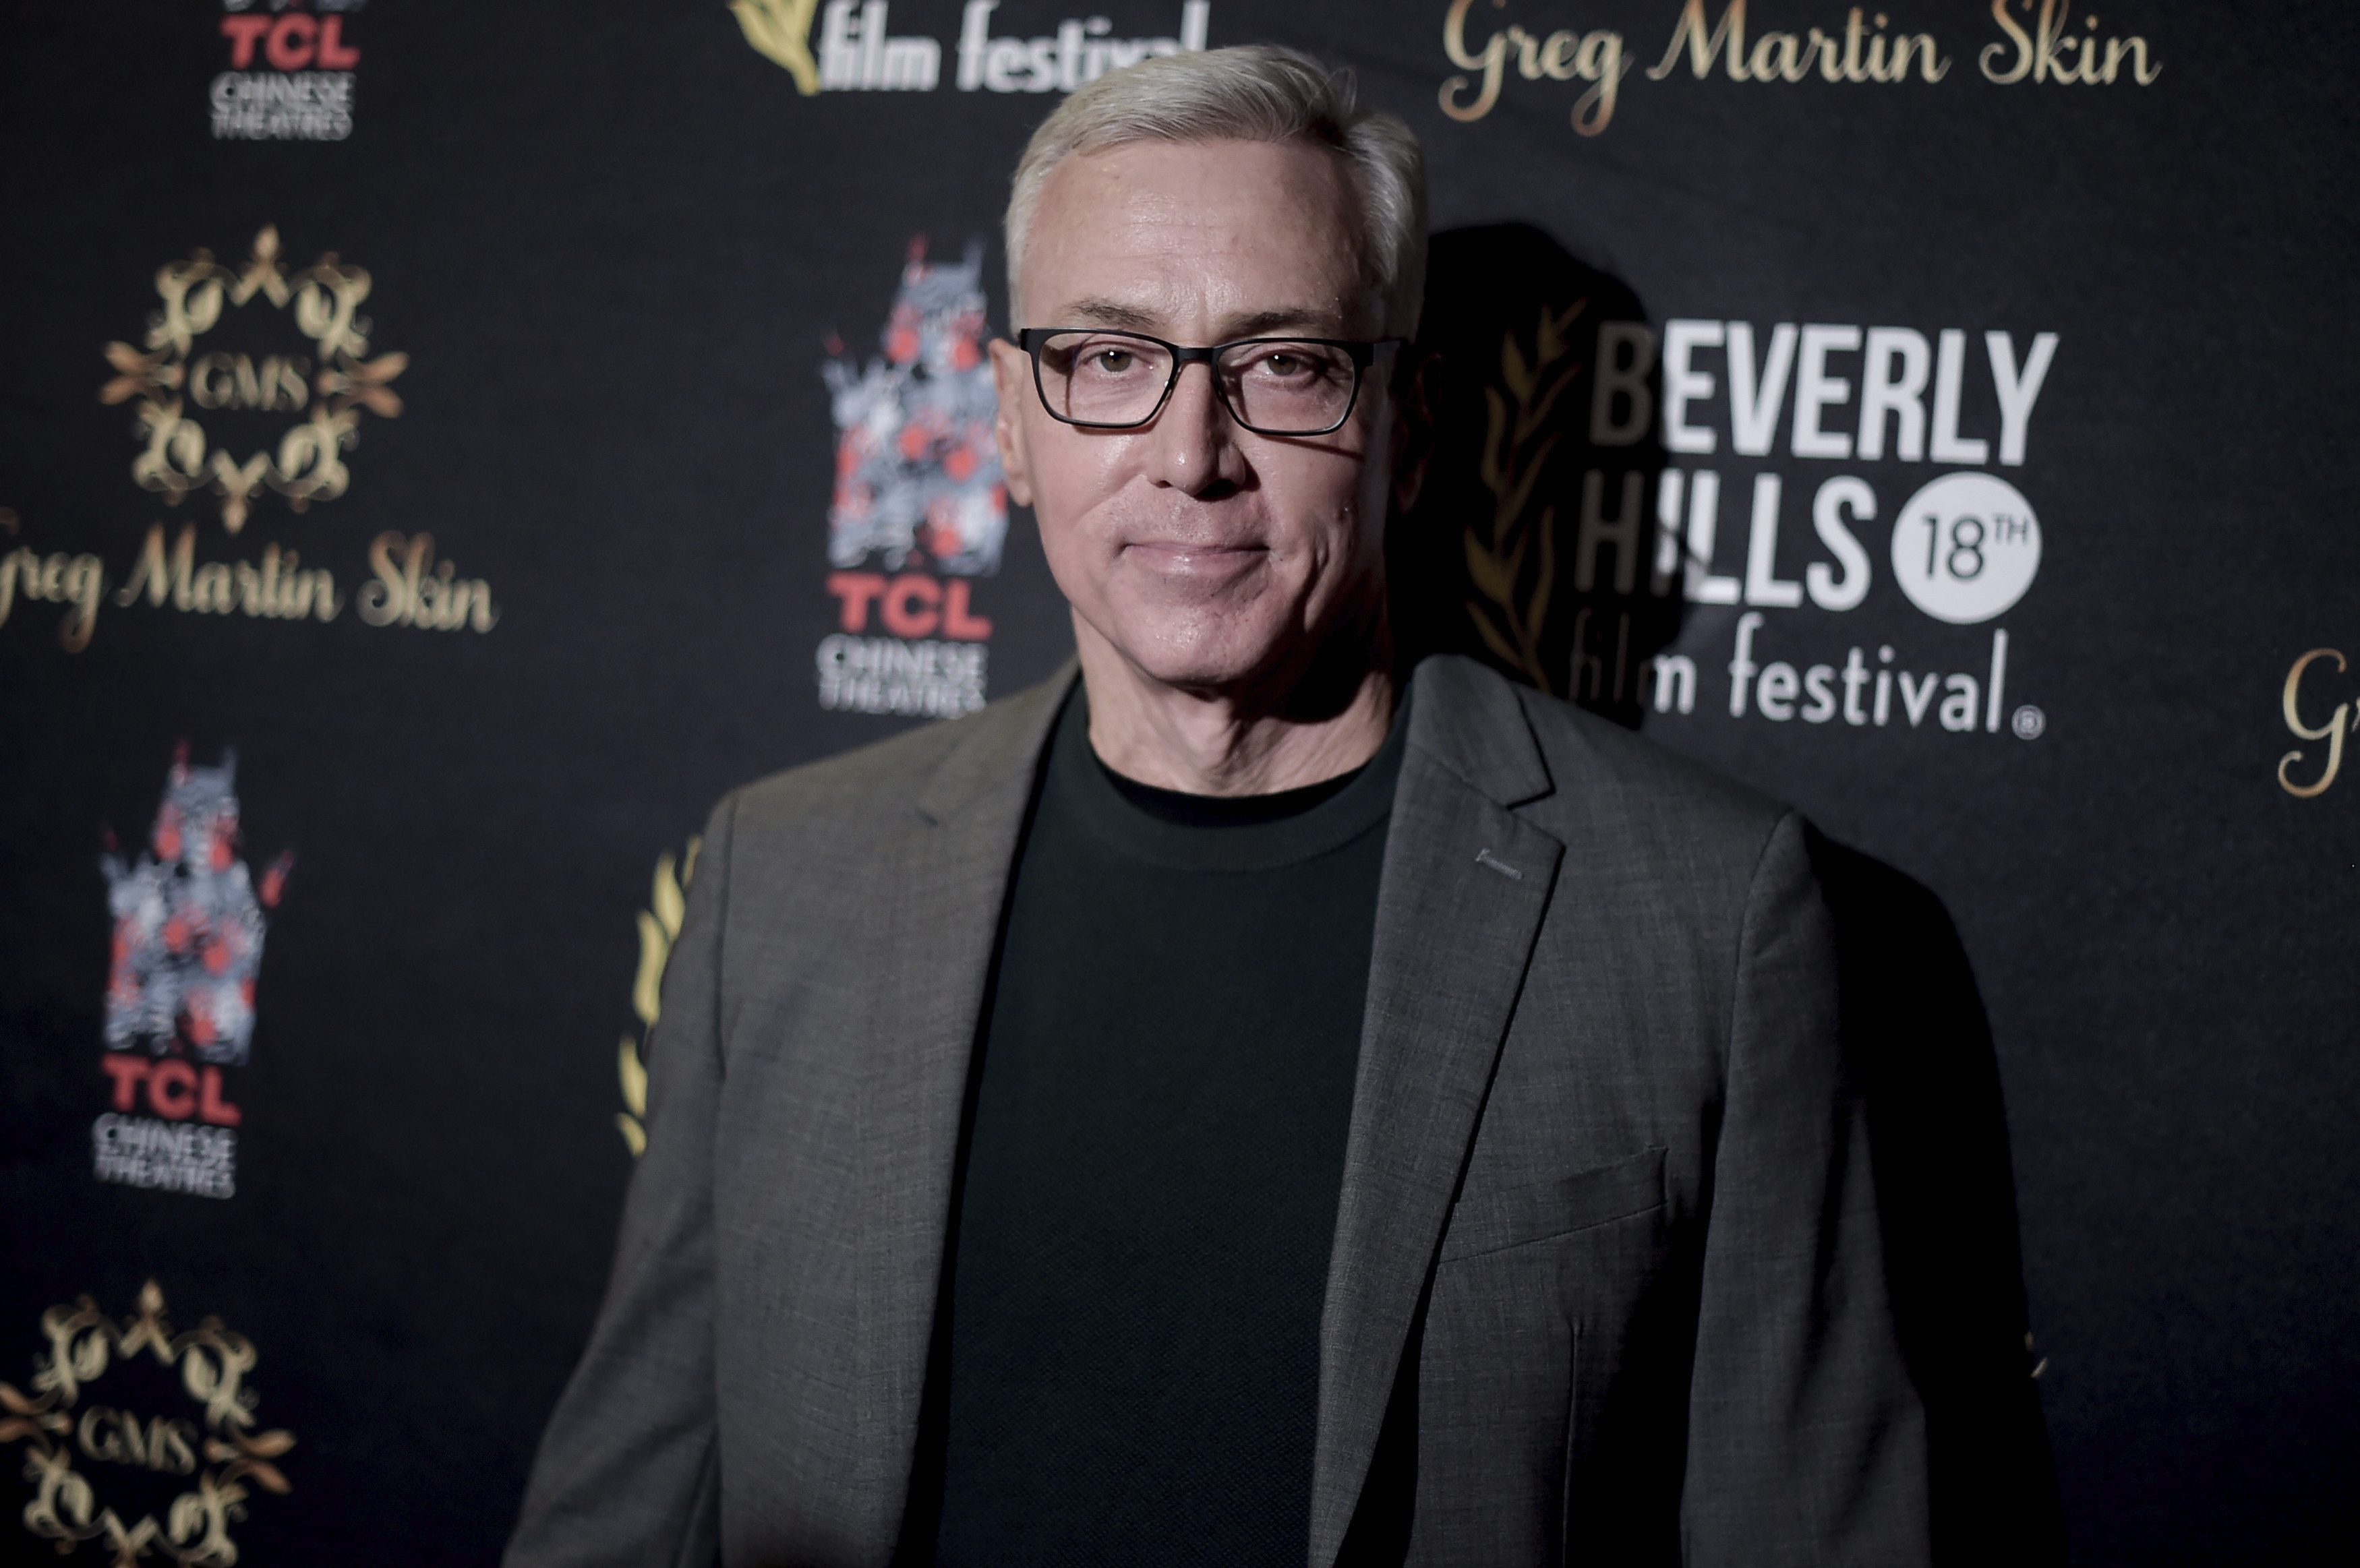 Dr. Drew Tests Positive for Covid-19 Months After Apologizing for Downplaying Virus – Rolling Stone